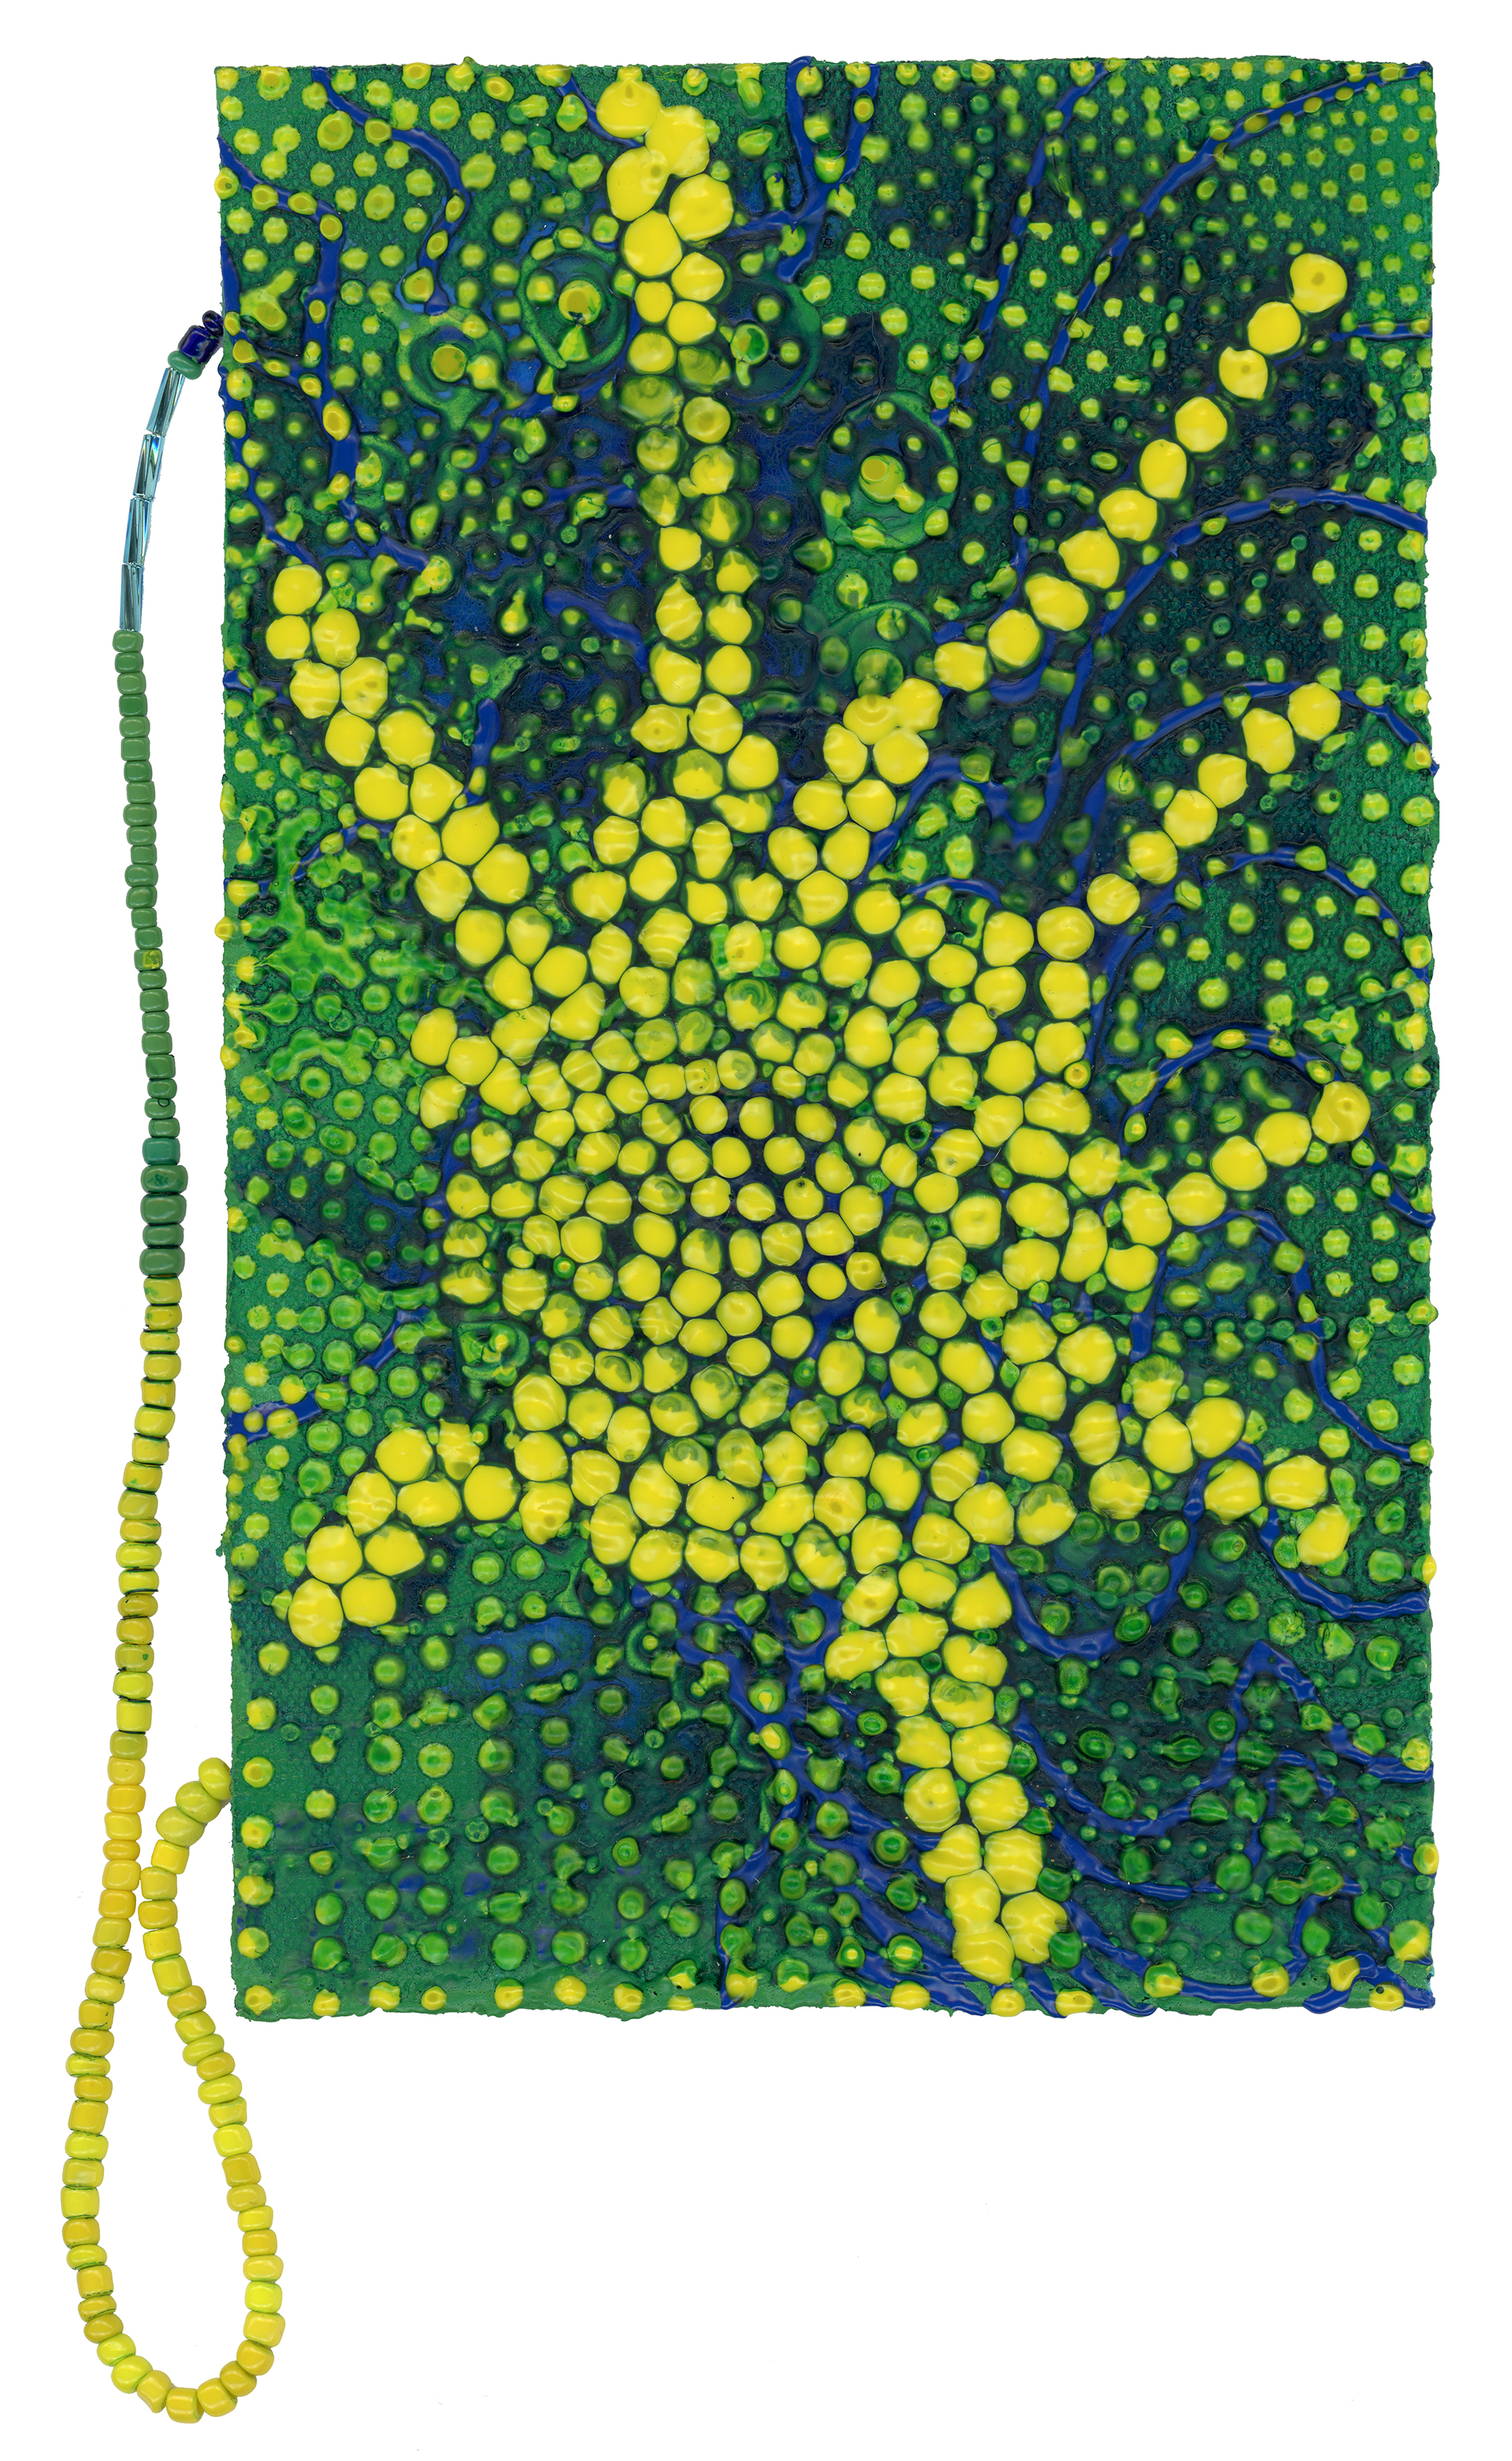 Molecular (Growth Pattern)  Acrylic and glass beads on canvas  January 2017  5 inches by 9 inches